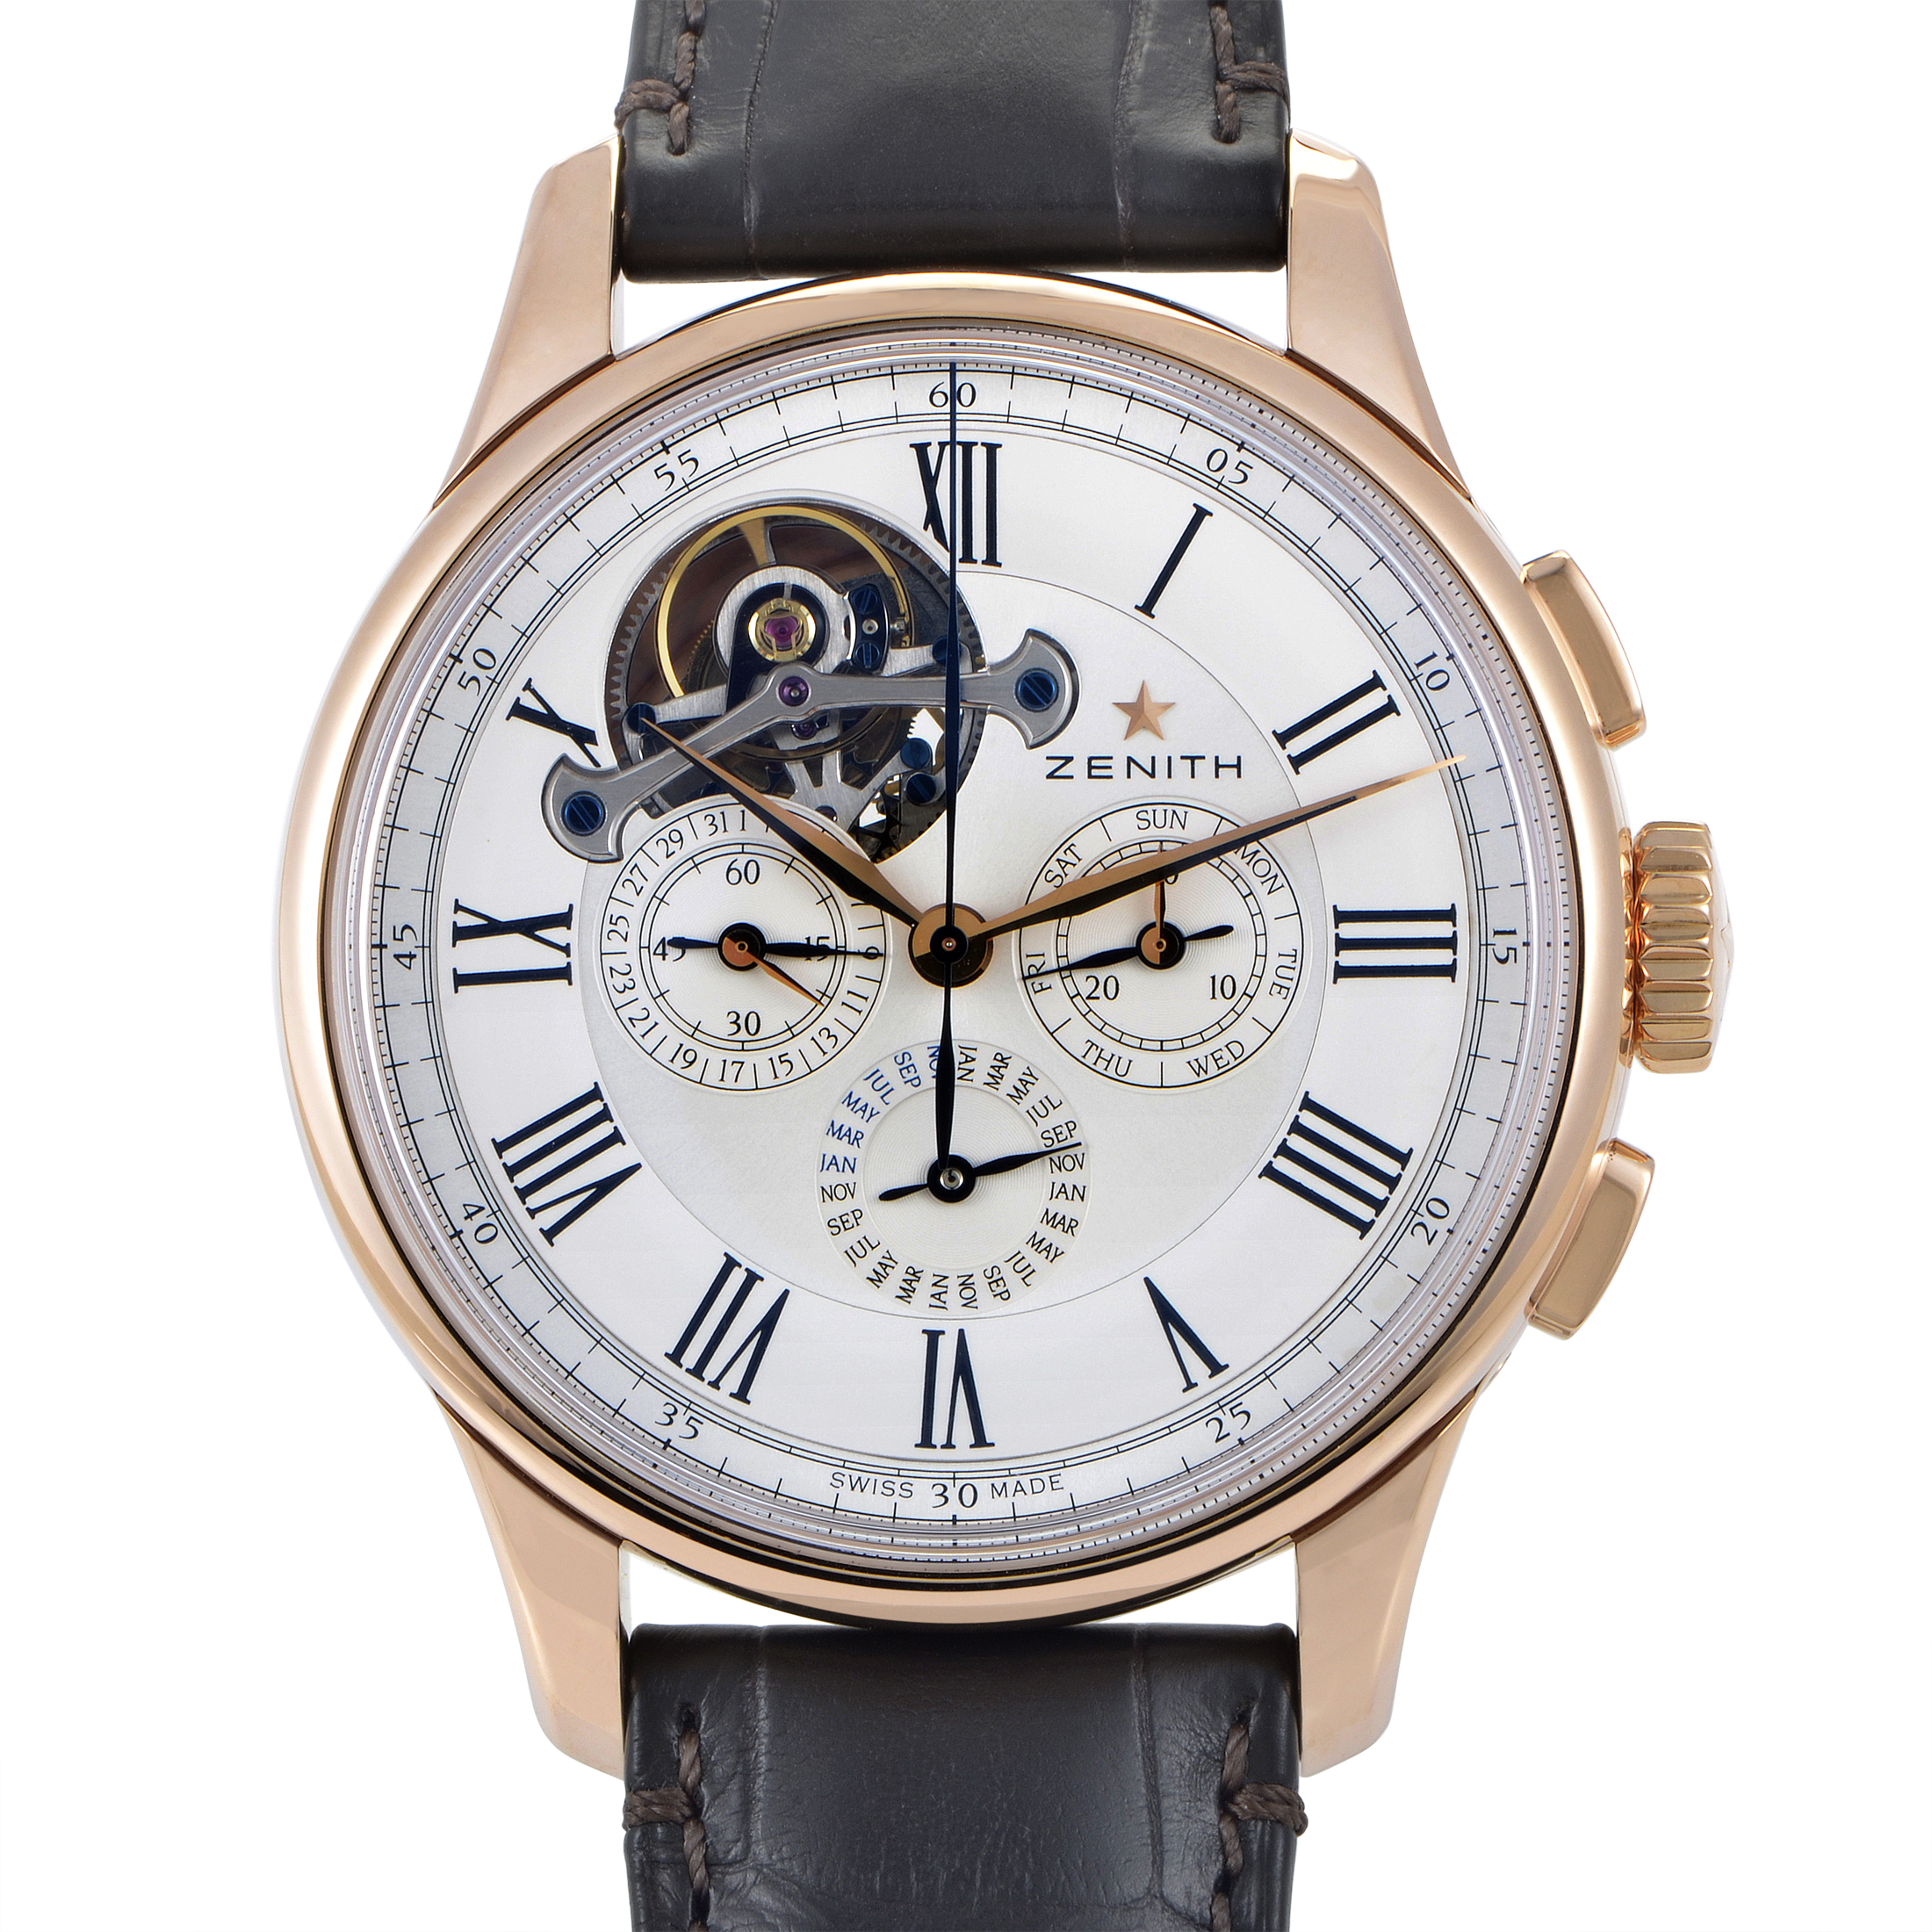 Academy Tourbillon Perpetual Calendar Men's Watch 18.2250.4033/01.C713